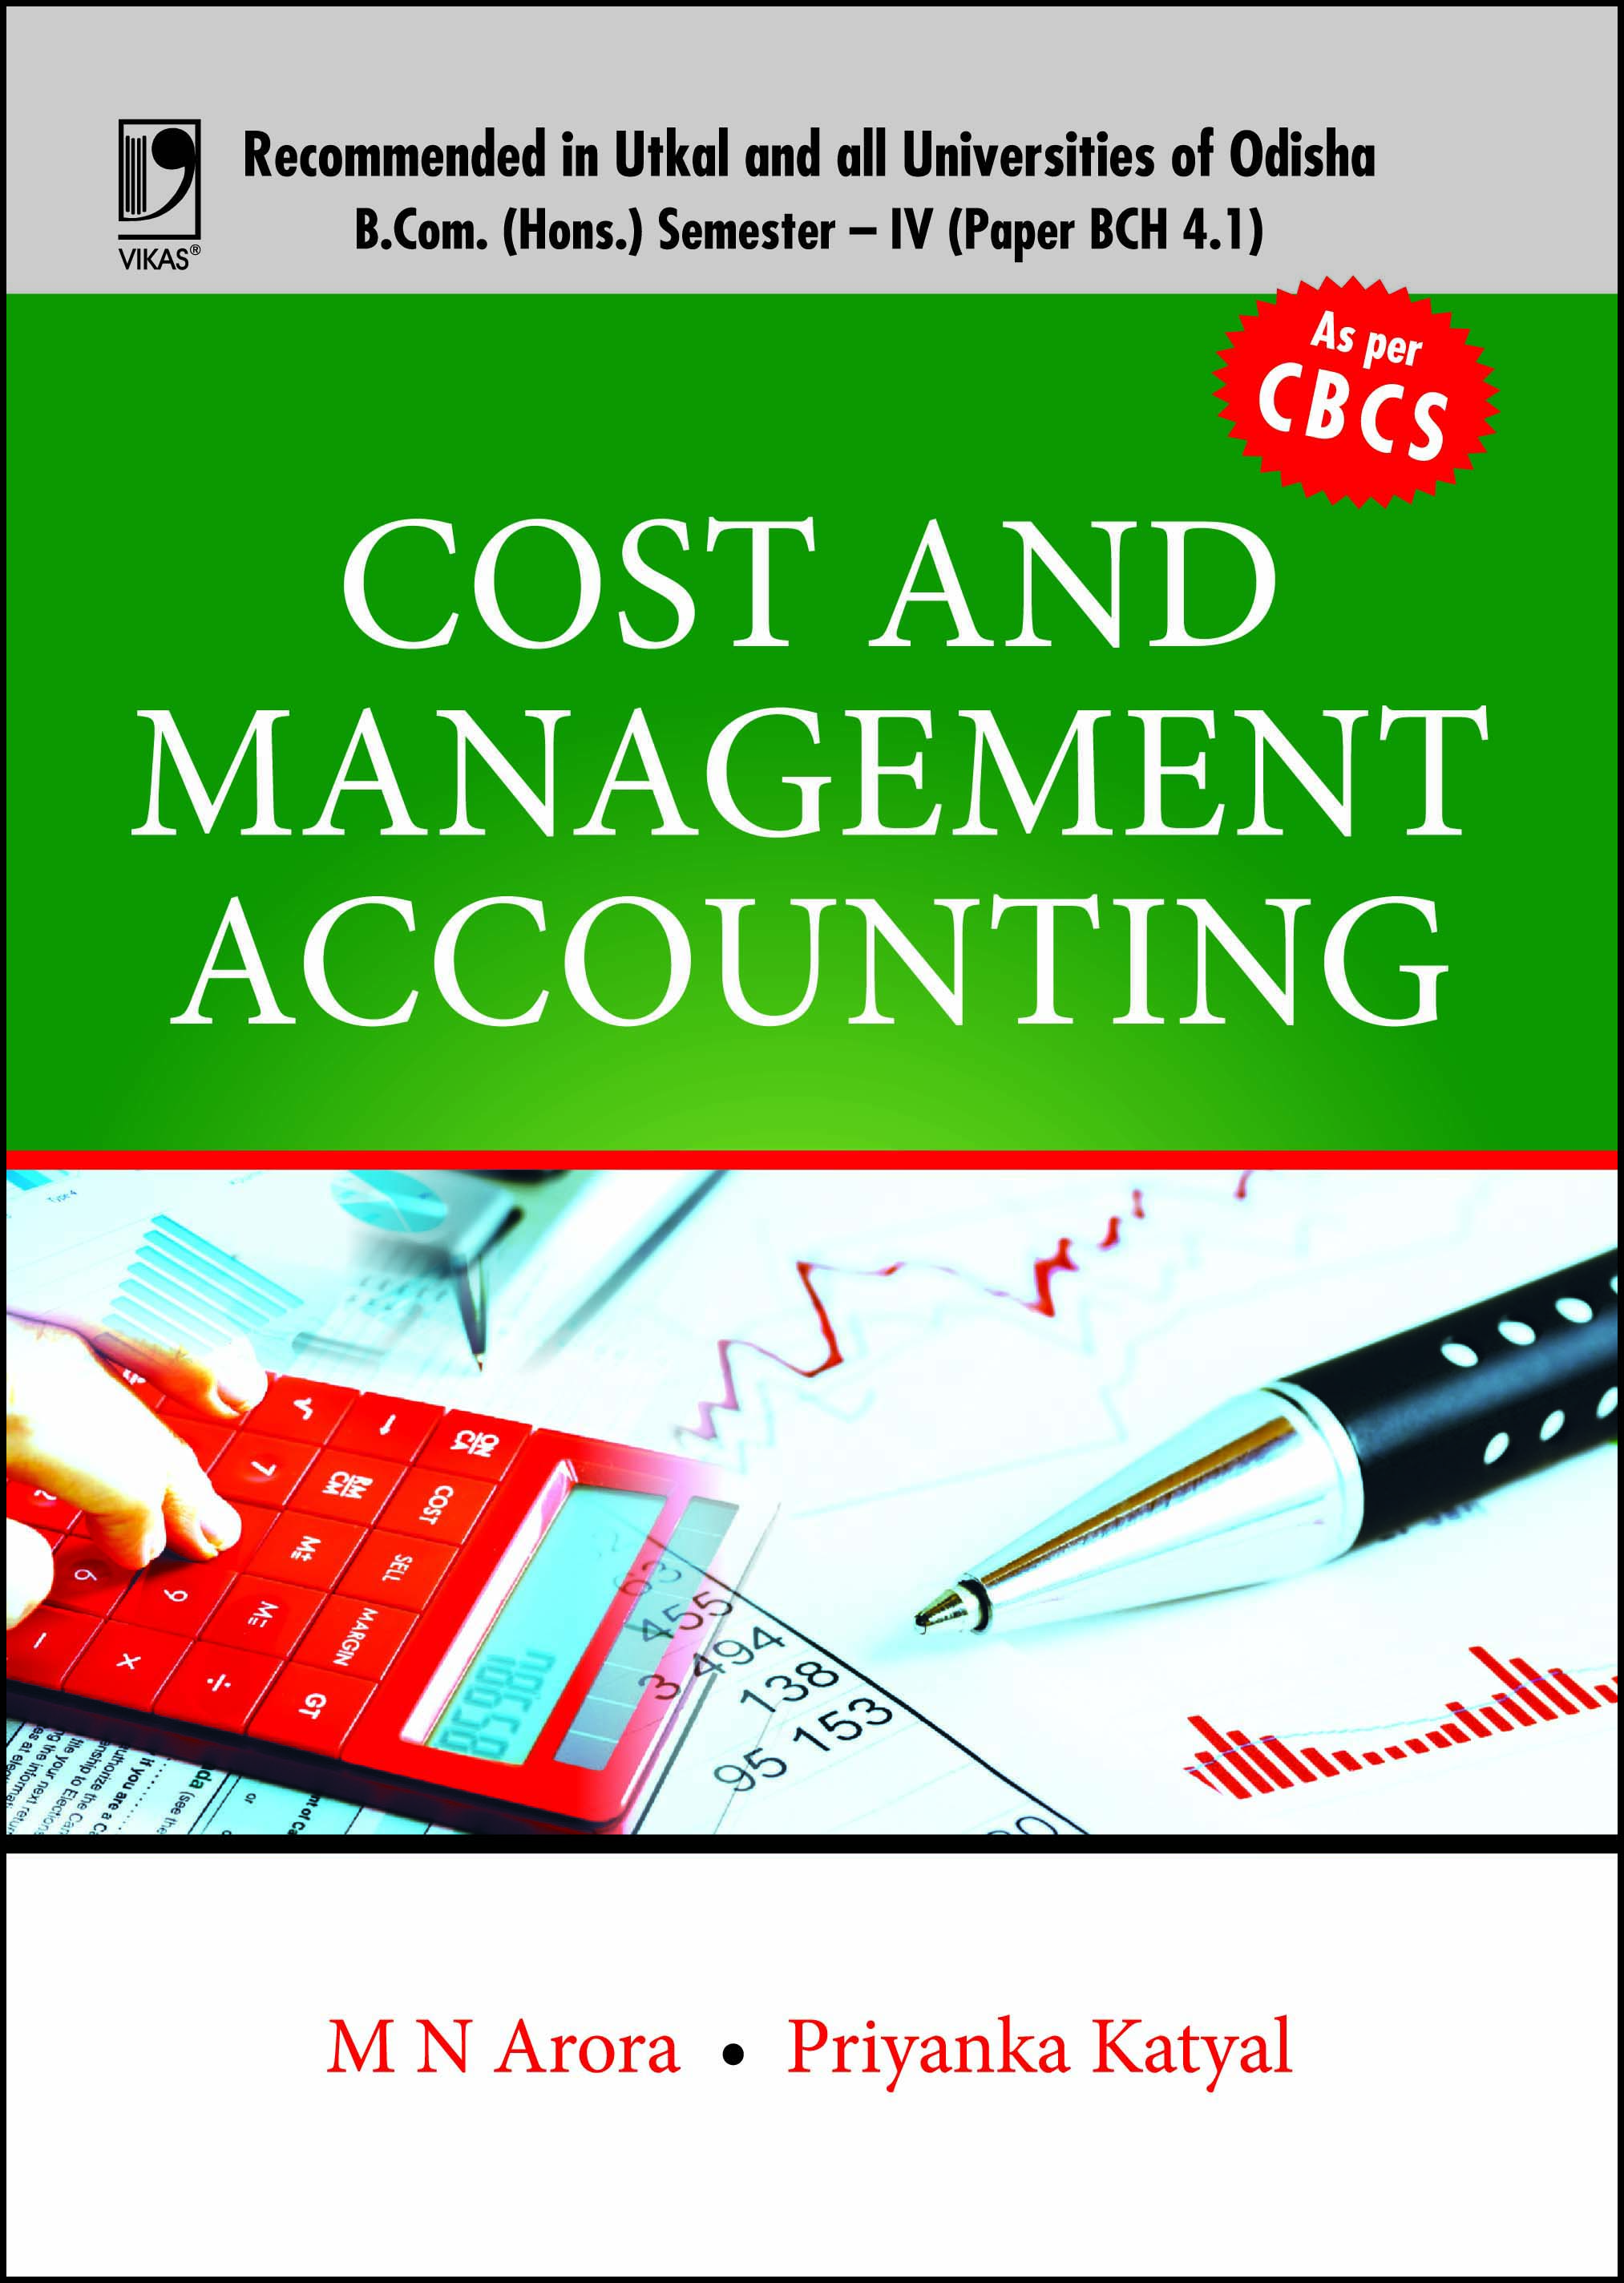 Cost and Management Accounting (For B.Com (Hons.), Sem.-IV, Odisha Universities) by  M N Arora